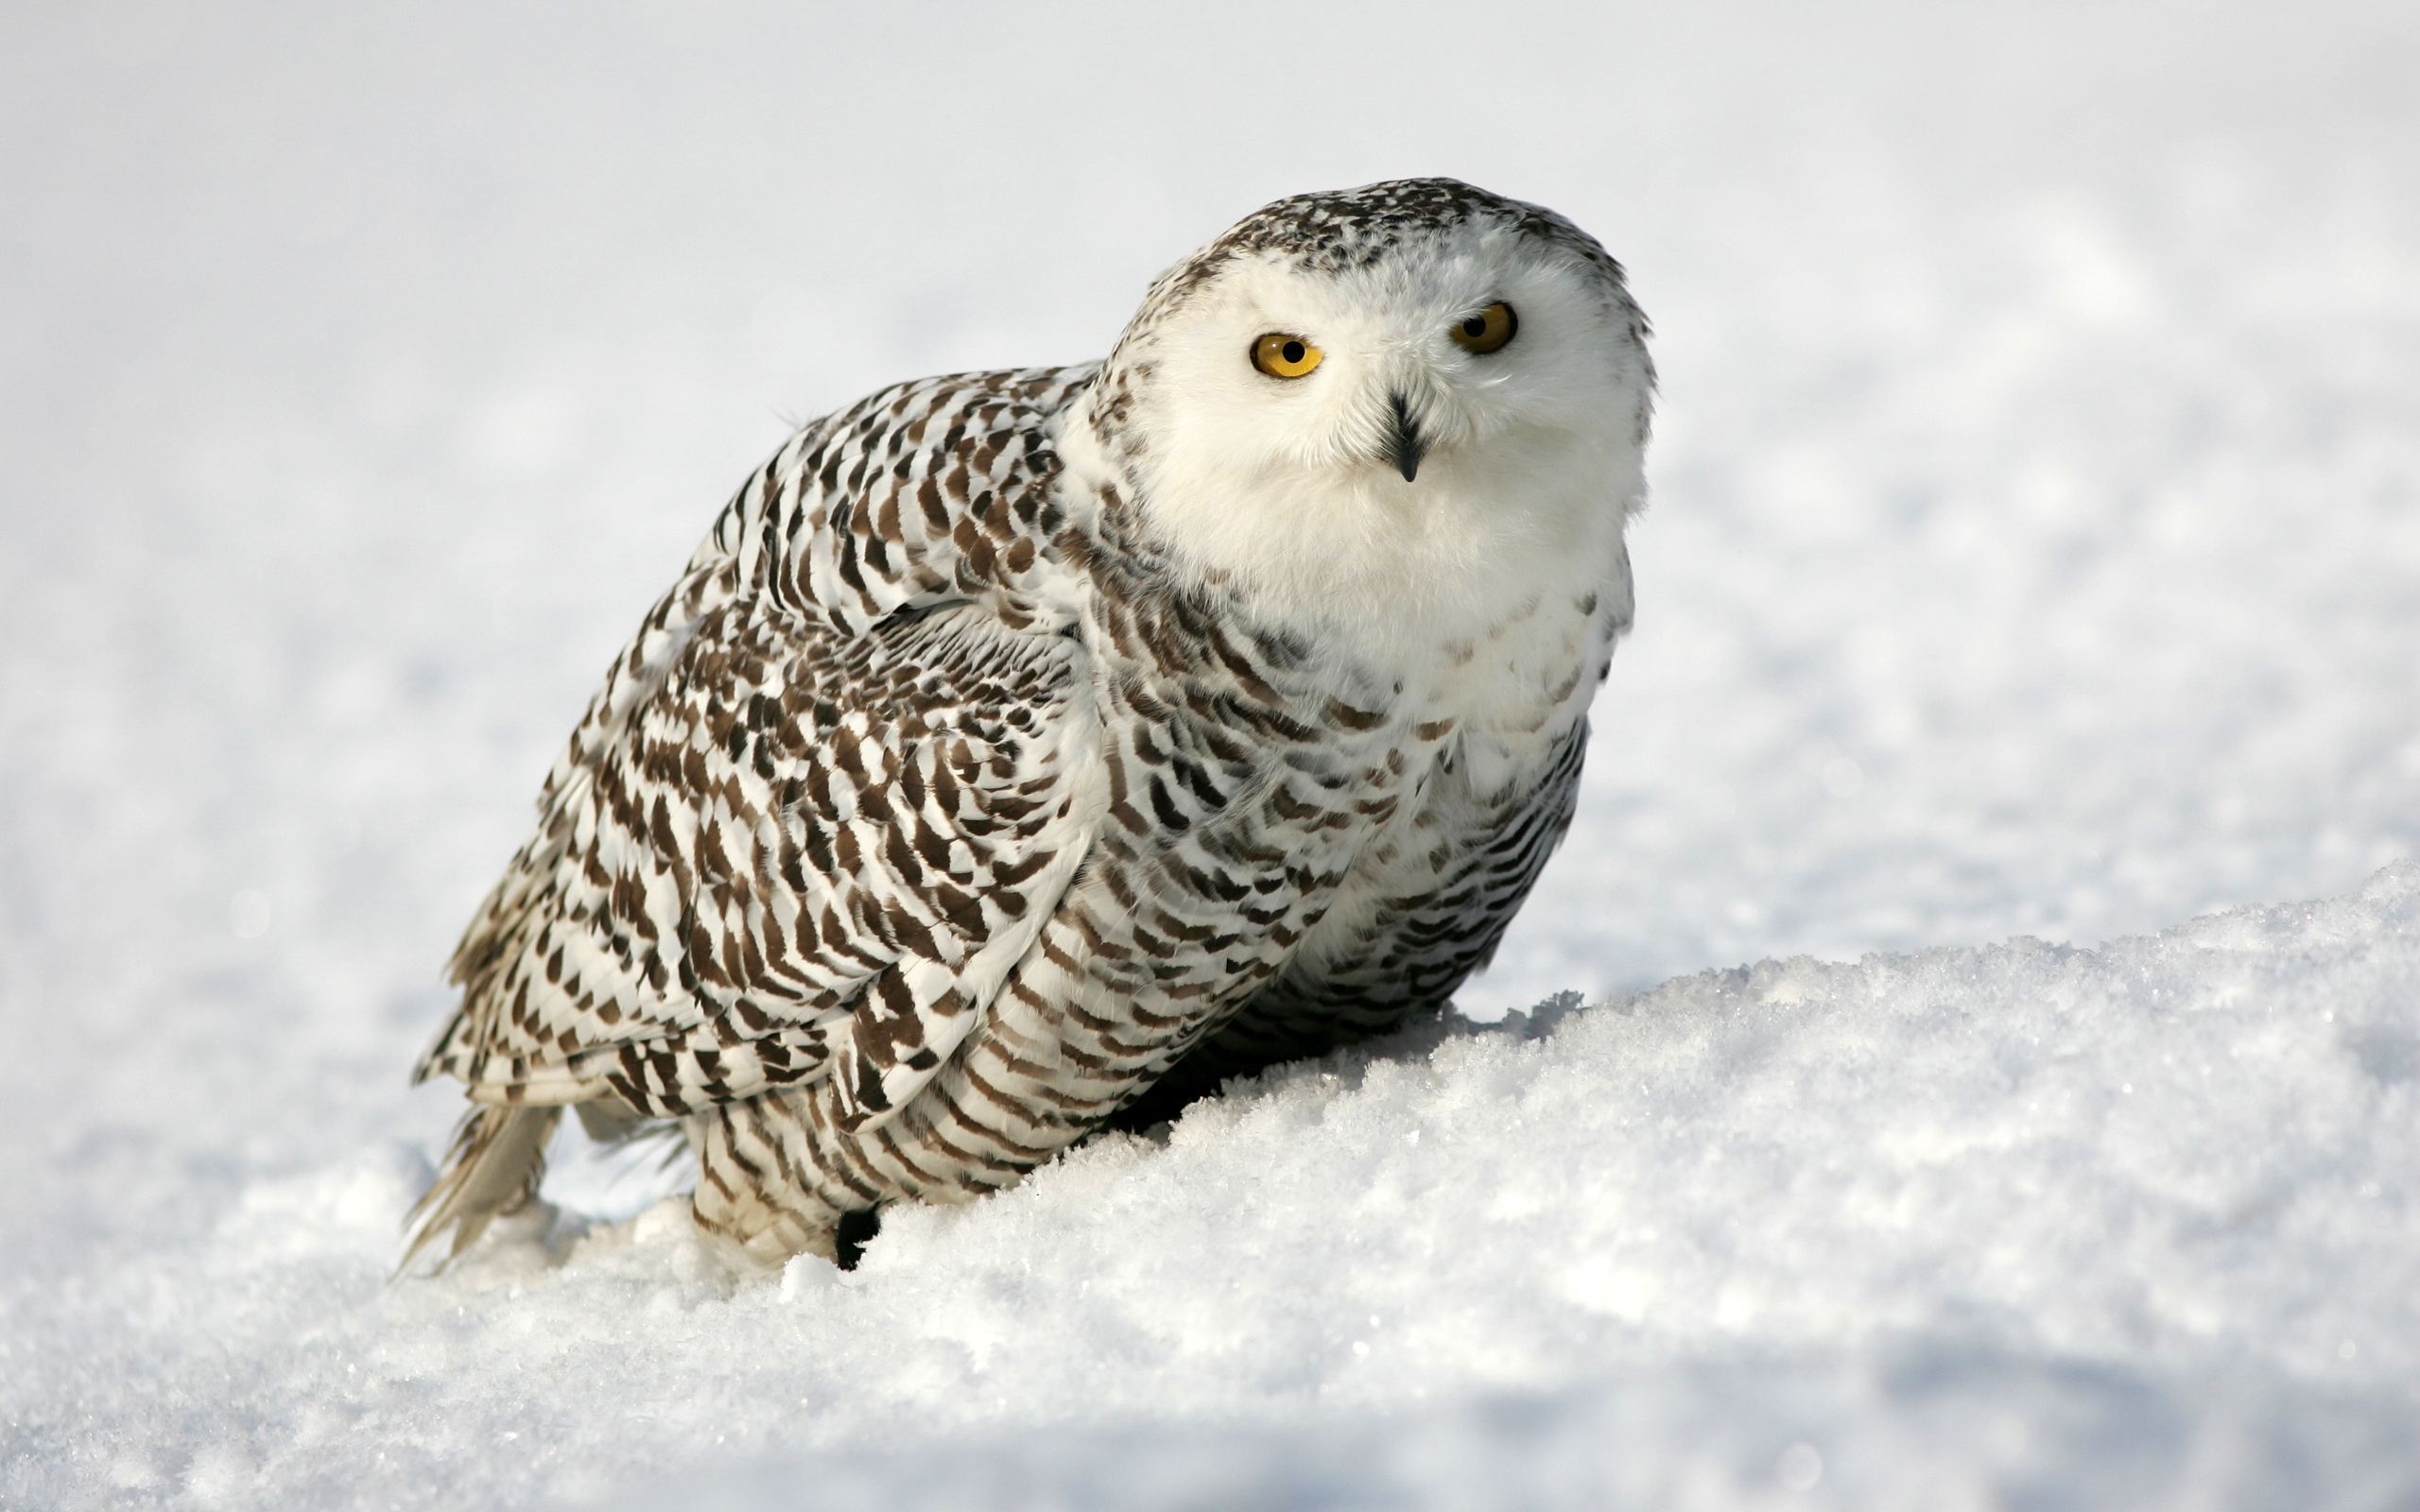 Snowy owl beautiful hd beautiful pictures all hd wallpapers snowy owl beautiful hd beautiful pictures snowy owl 1 voltagebd Images